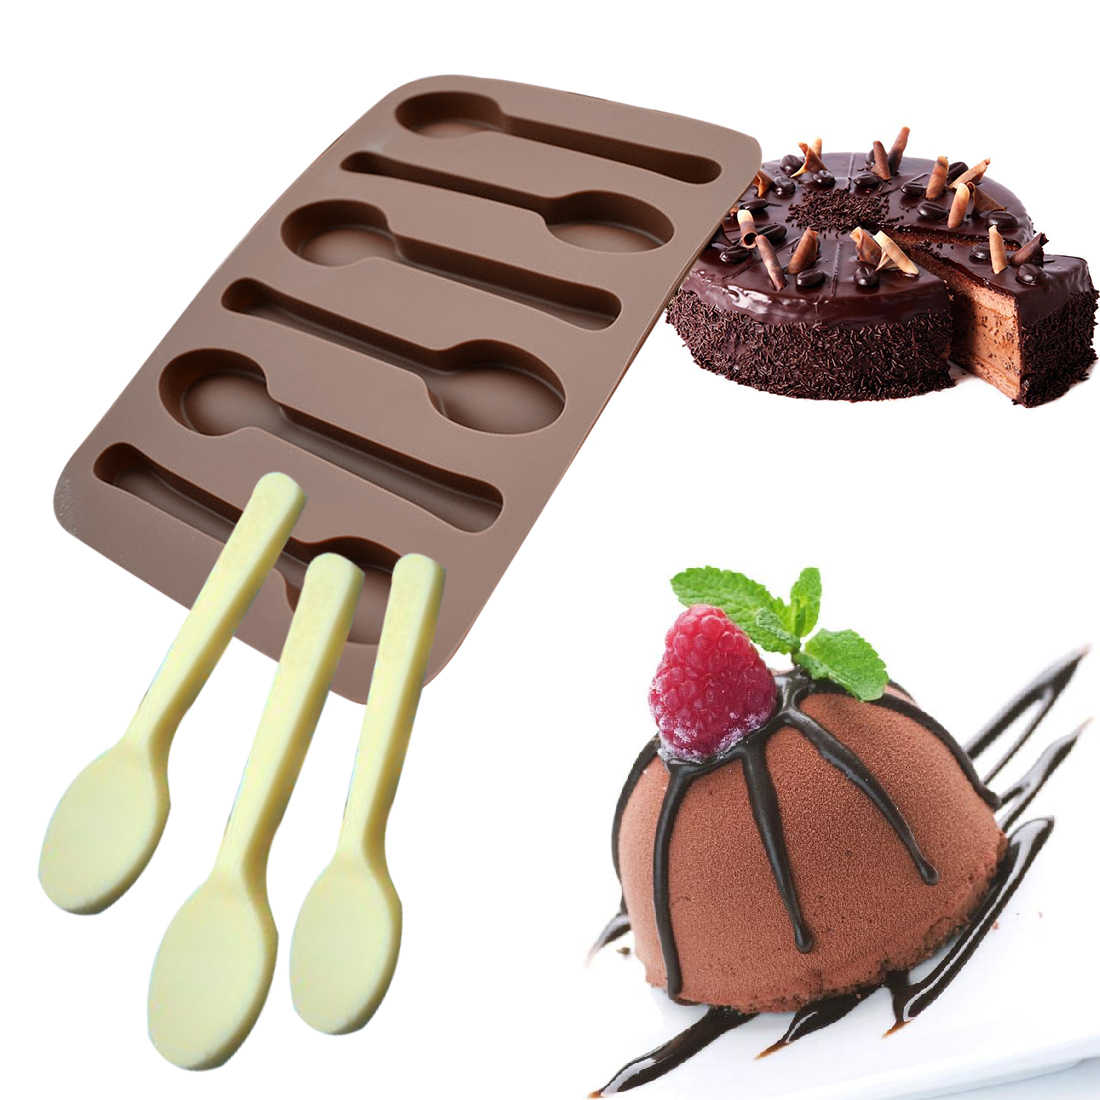 SPOON SILICONE MOULD-3D SPOONS MOLD-FONDANT TEASPOON//CHOCOLATE-ICING//CAKE//COFFEE